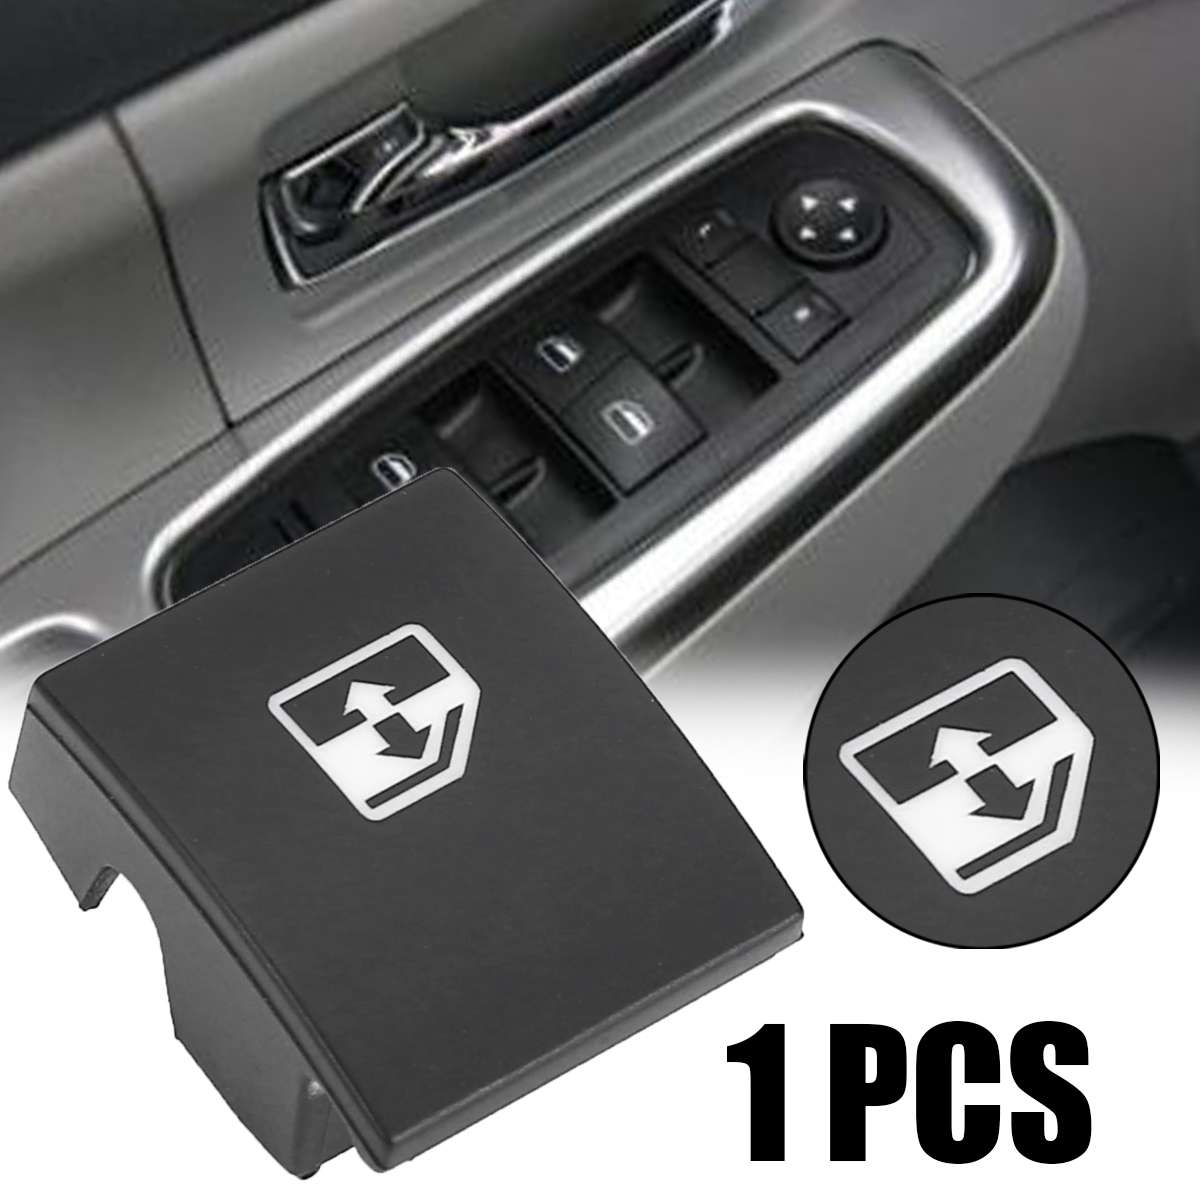 1pc Black Plastic Window Switch Button Cover 13228881 6240452 Replacement For VAUXHALL OPEL ASTRA MK5 H ZAFIRA/TIGRA B-in Car Switches & Relays from Automobiles & Motorcycles